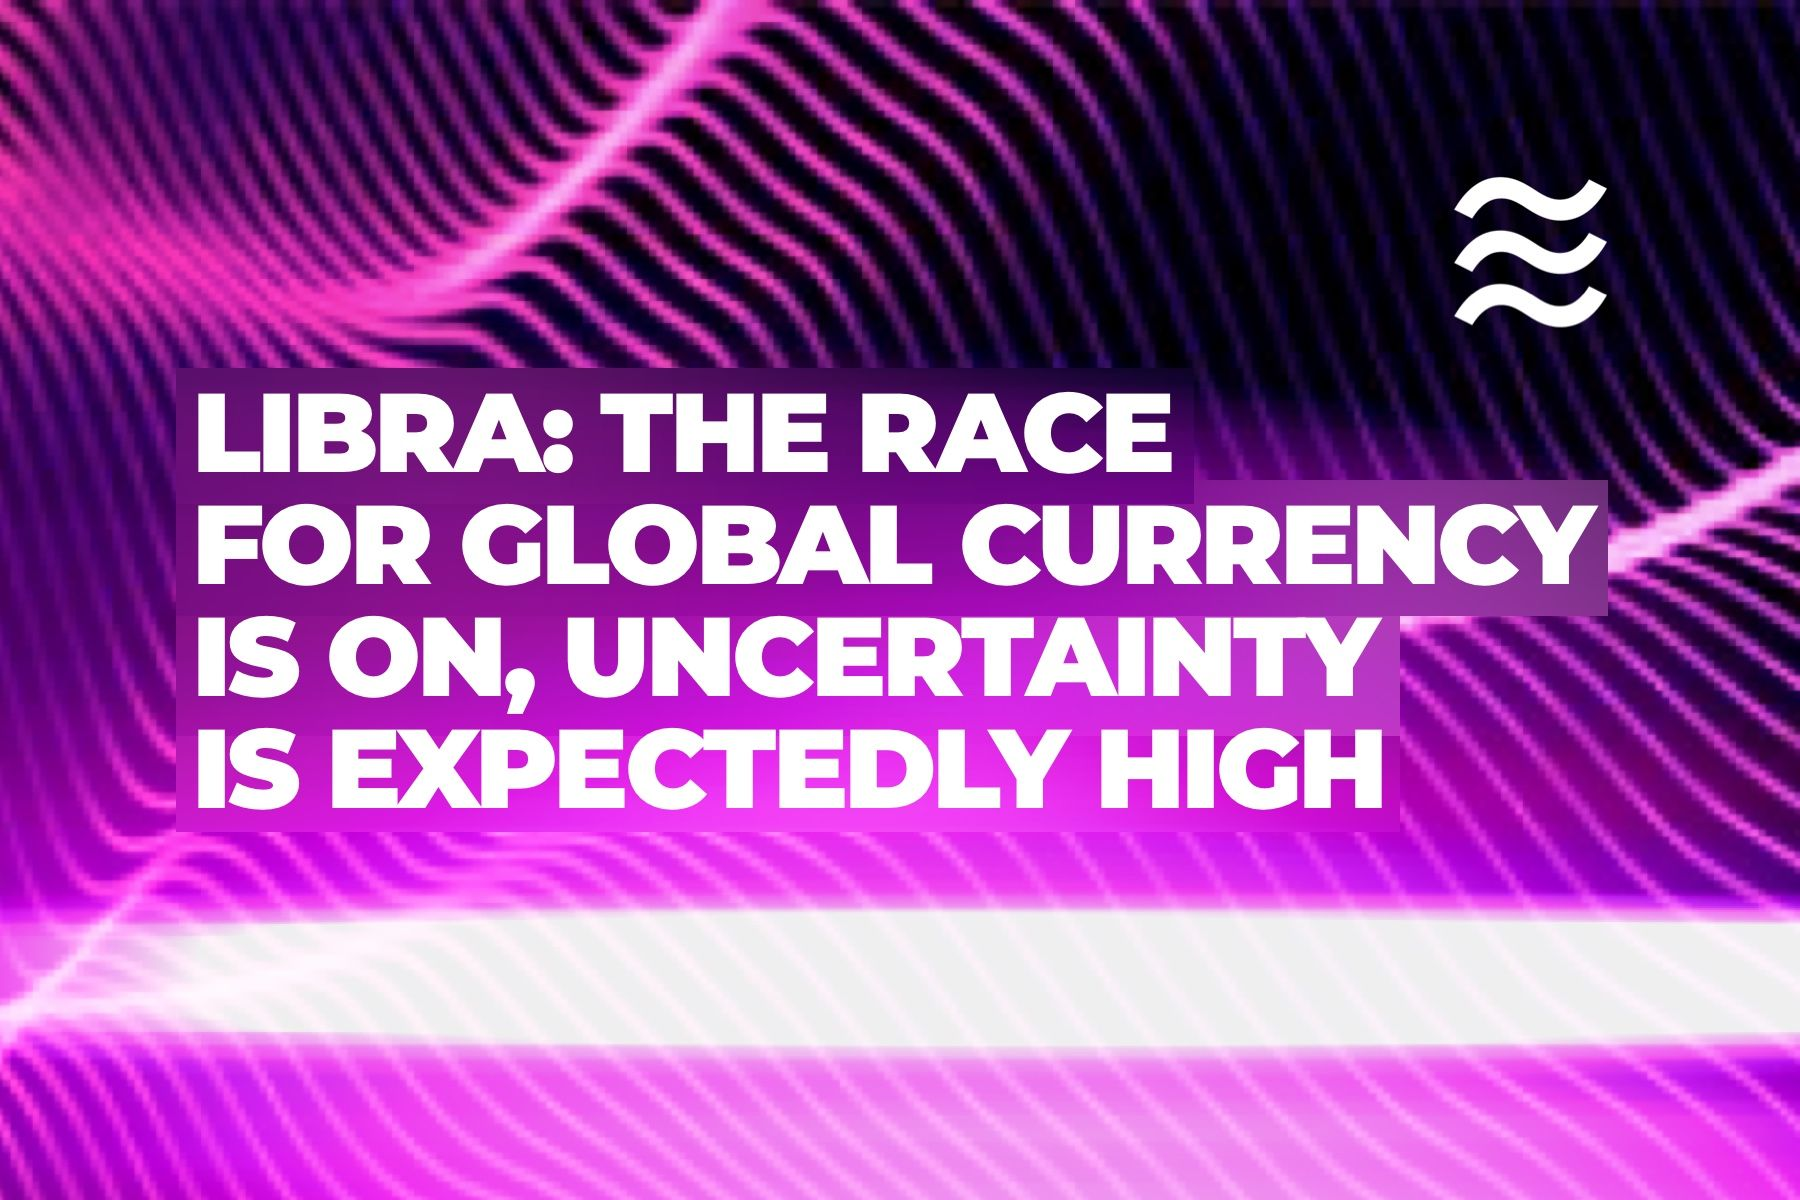 Report. Libra: the race for a global currency is on, uncertainty is high